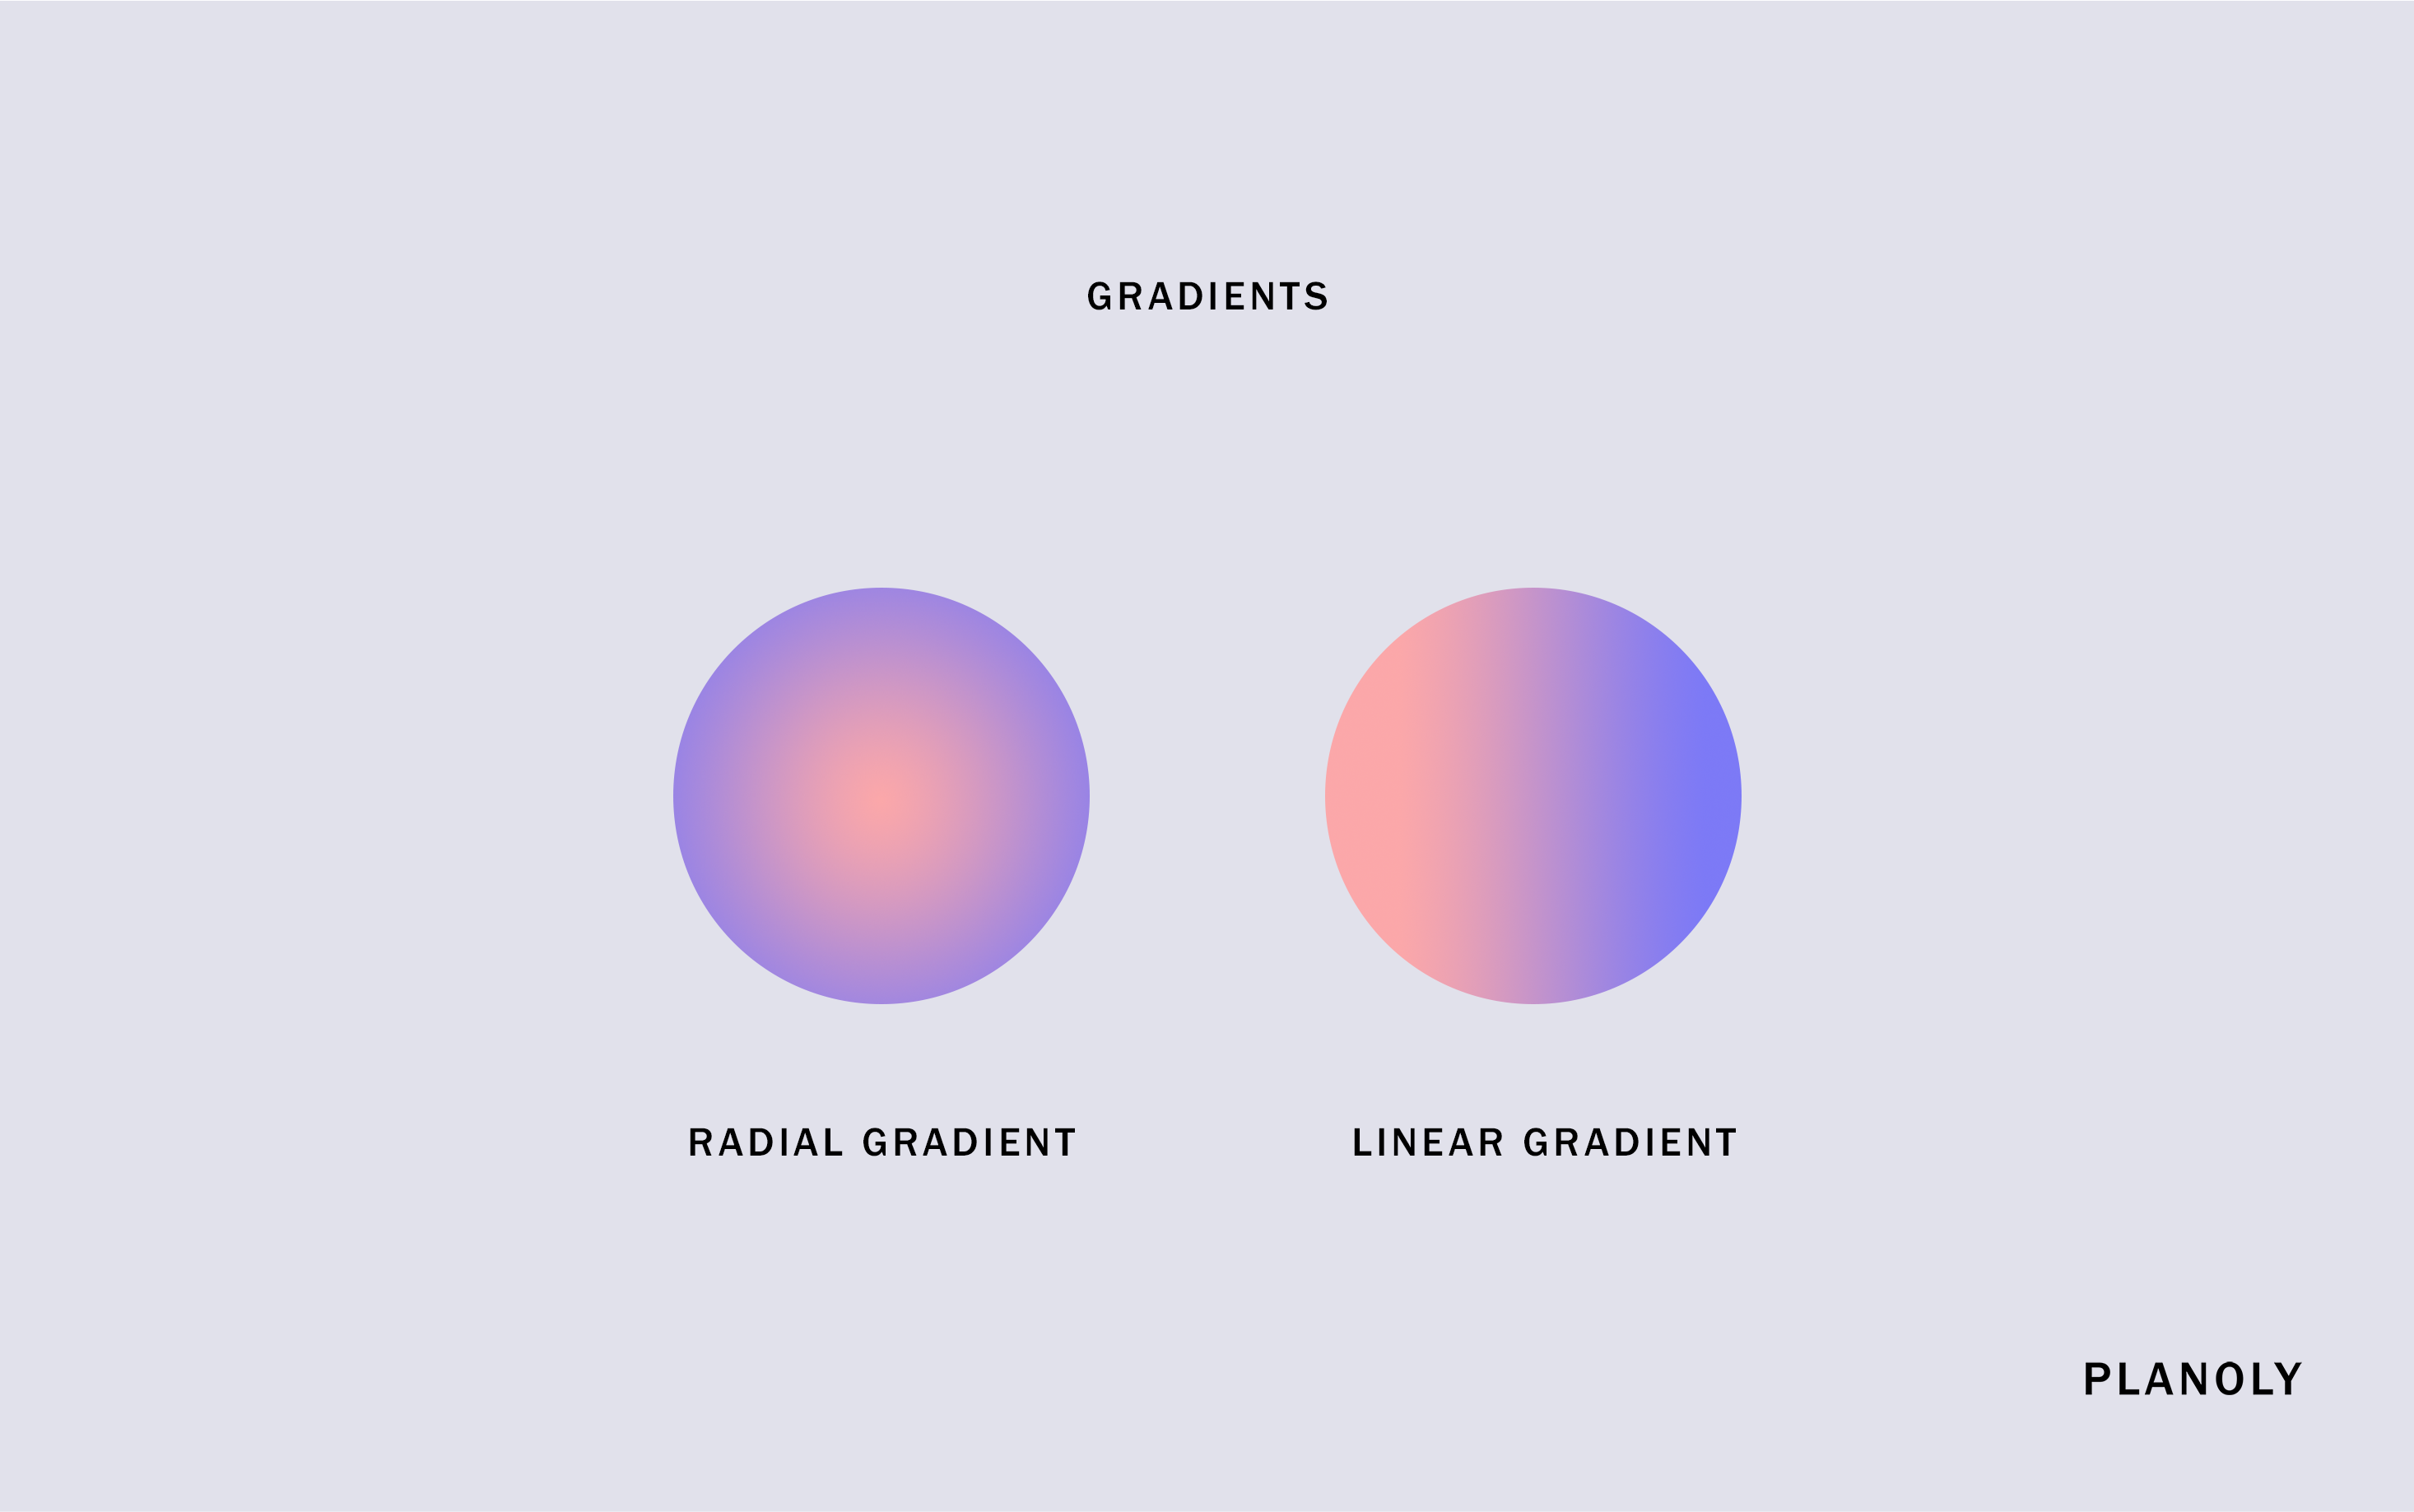 PLANOLY - Blog Post - 10 Design Terms You Should Know - Image 4